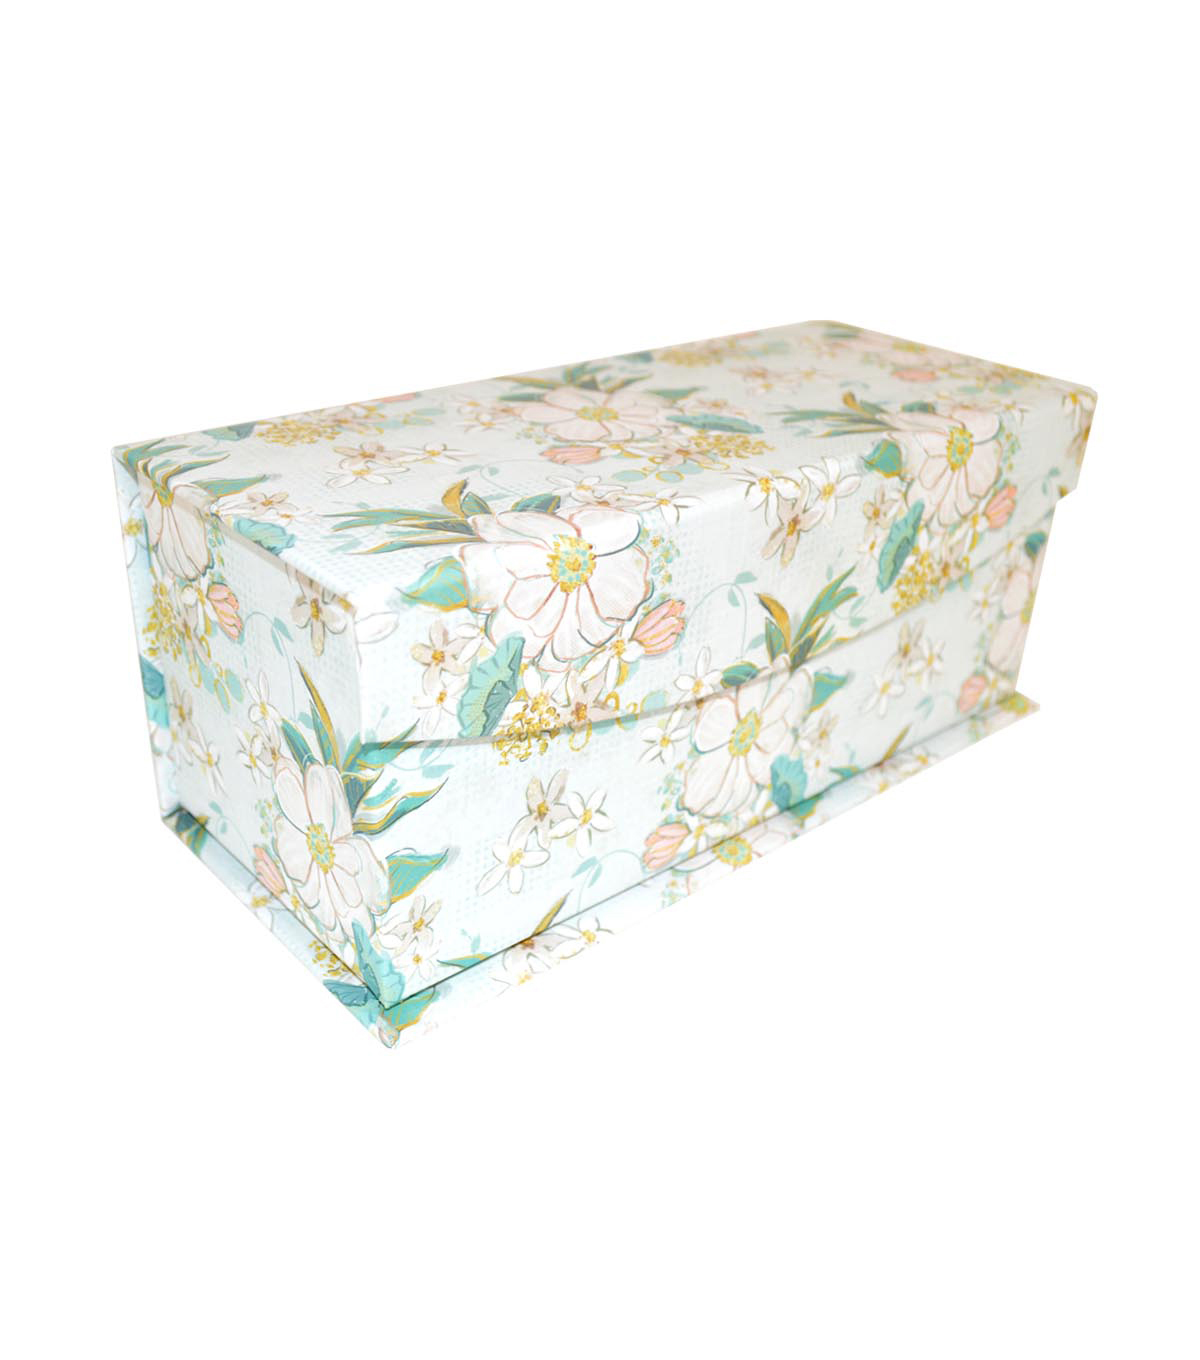 Extra Small Decorative Flip Top Storage Box-Blush Gold